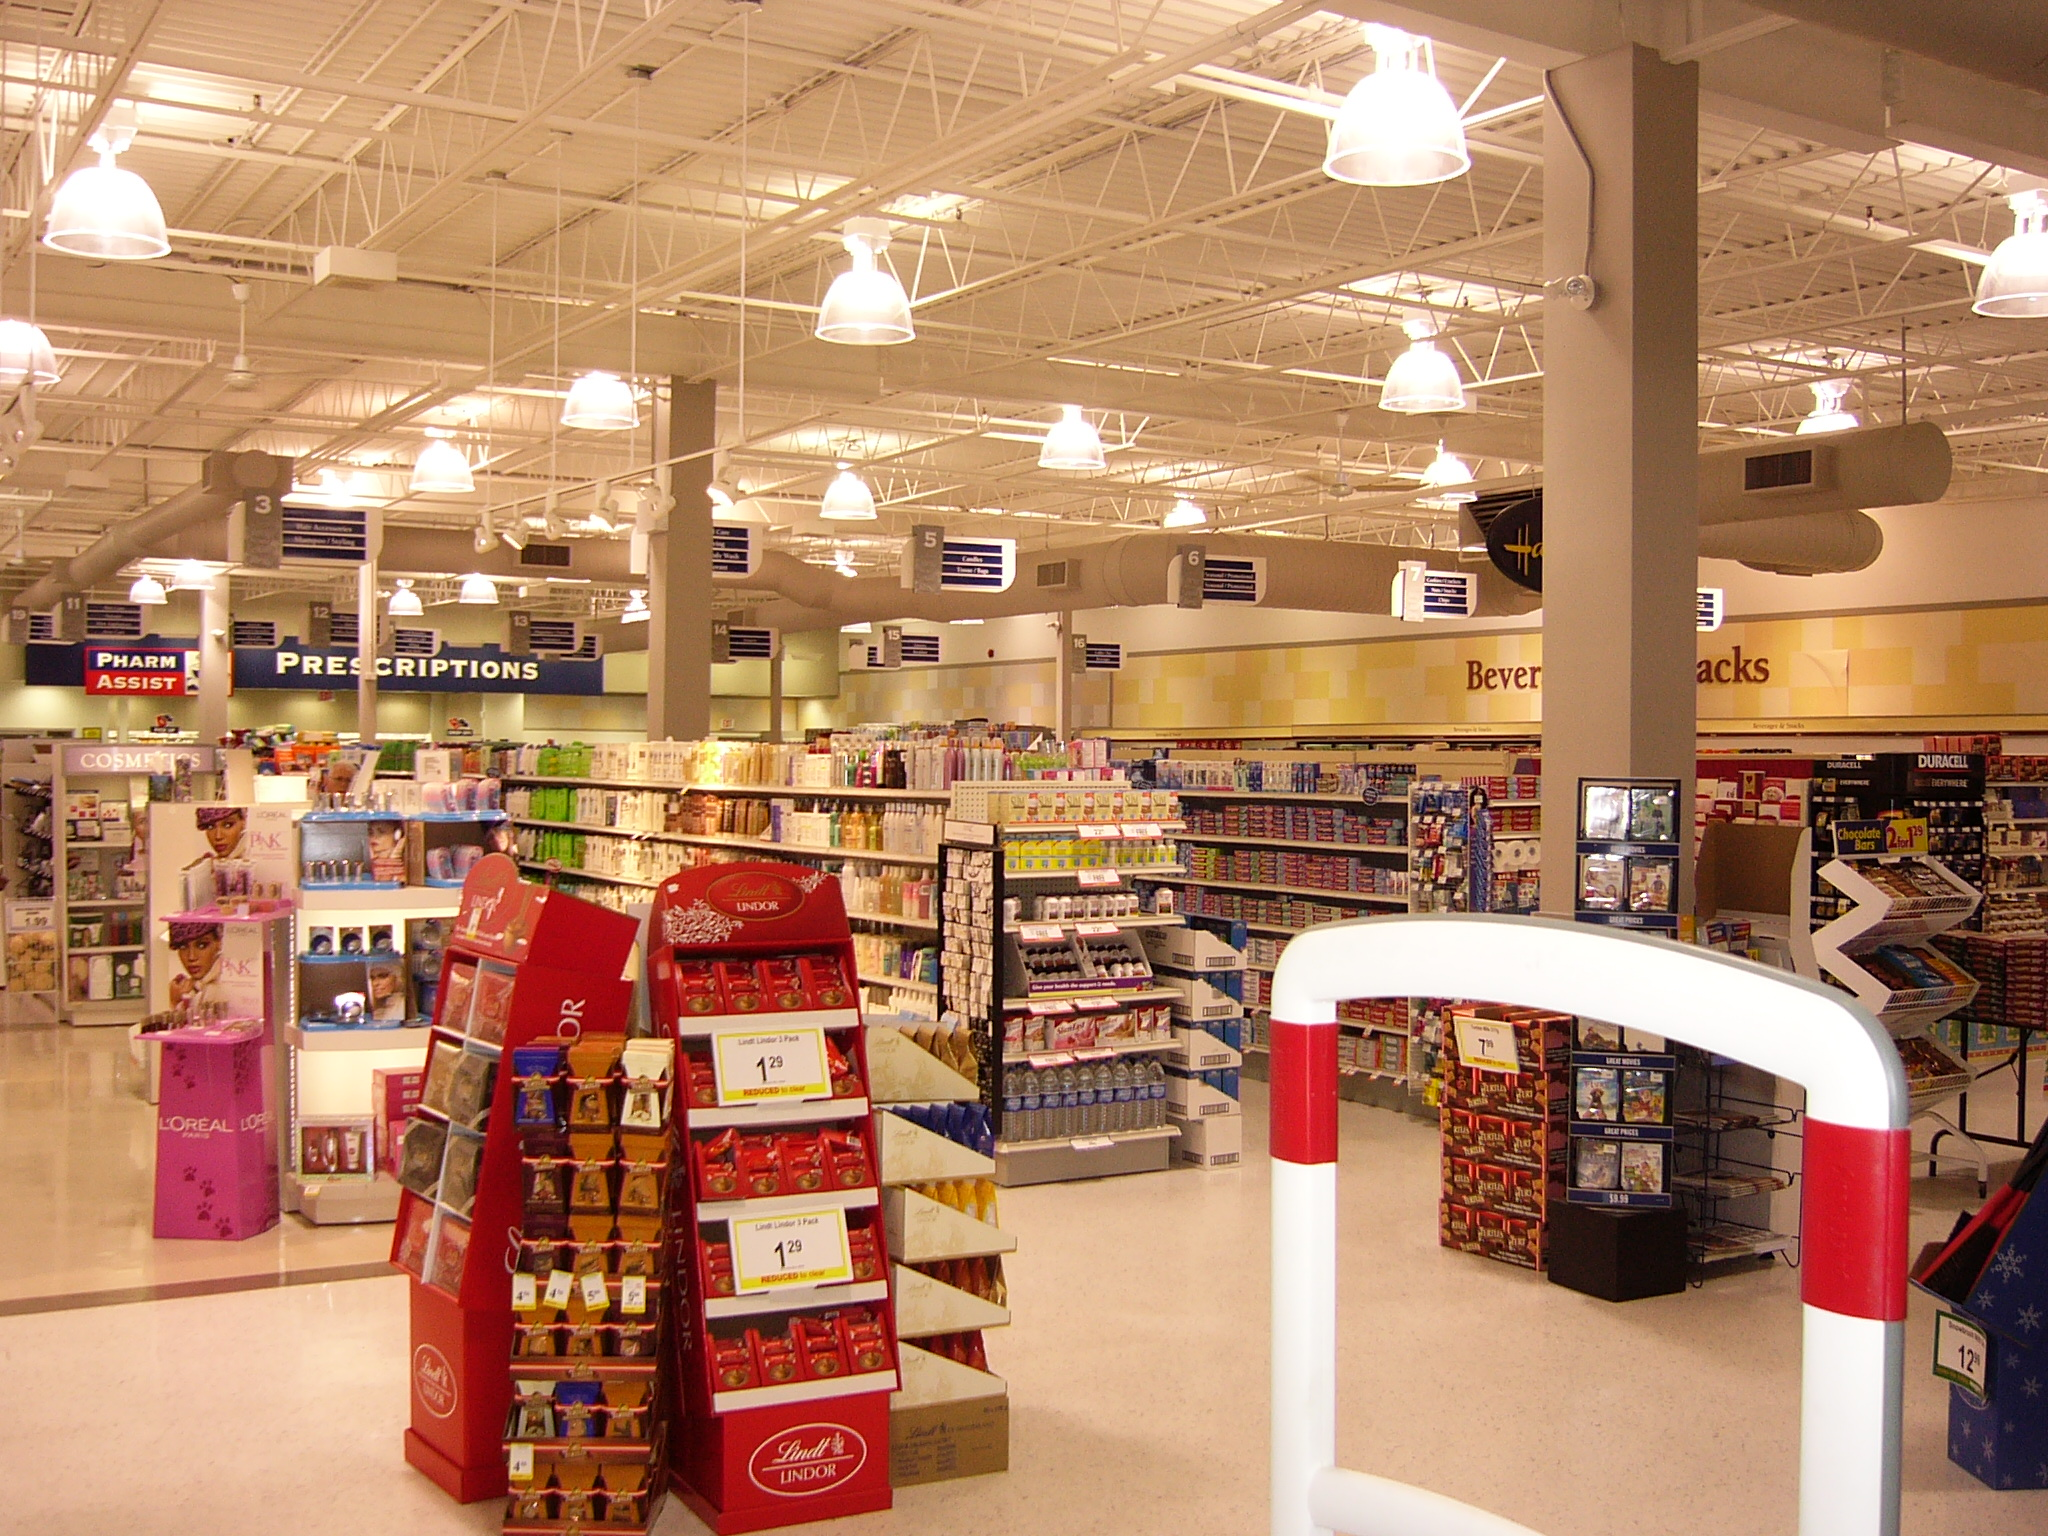 Pharma Plus, 611 Wonderland Rd. N., Interior right 002.jpg